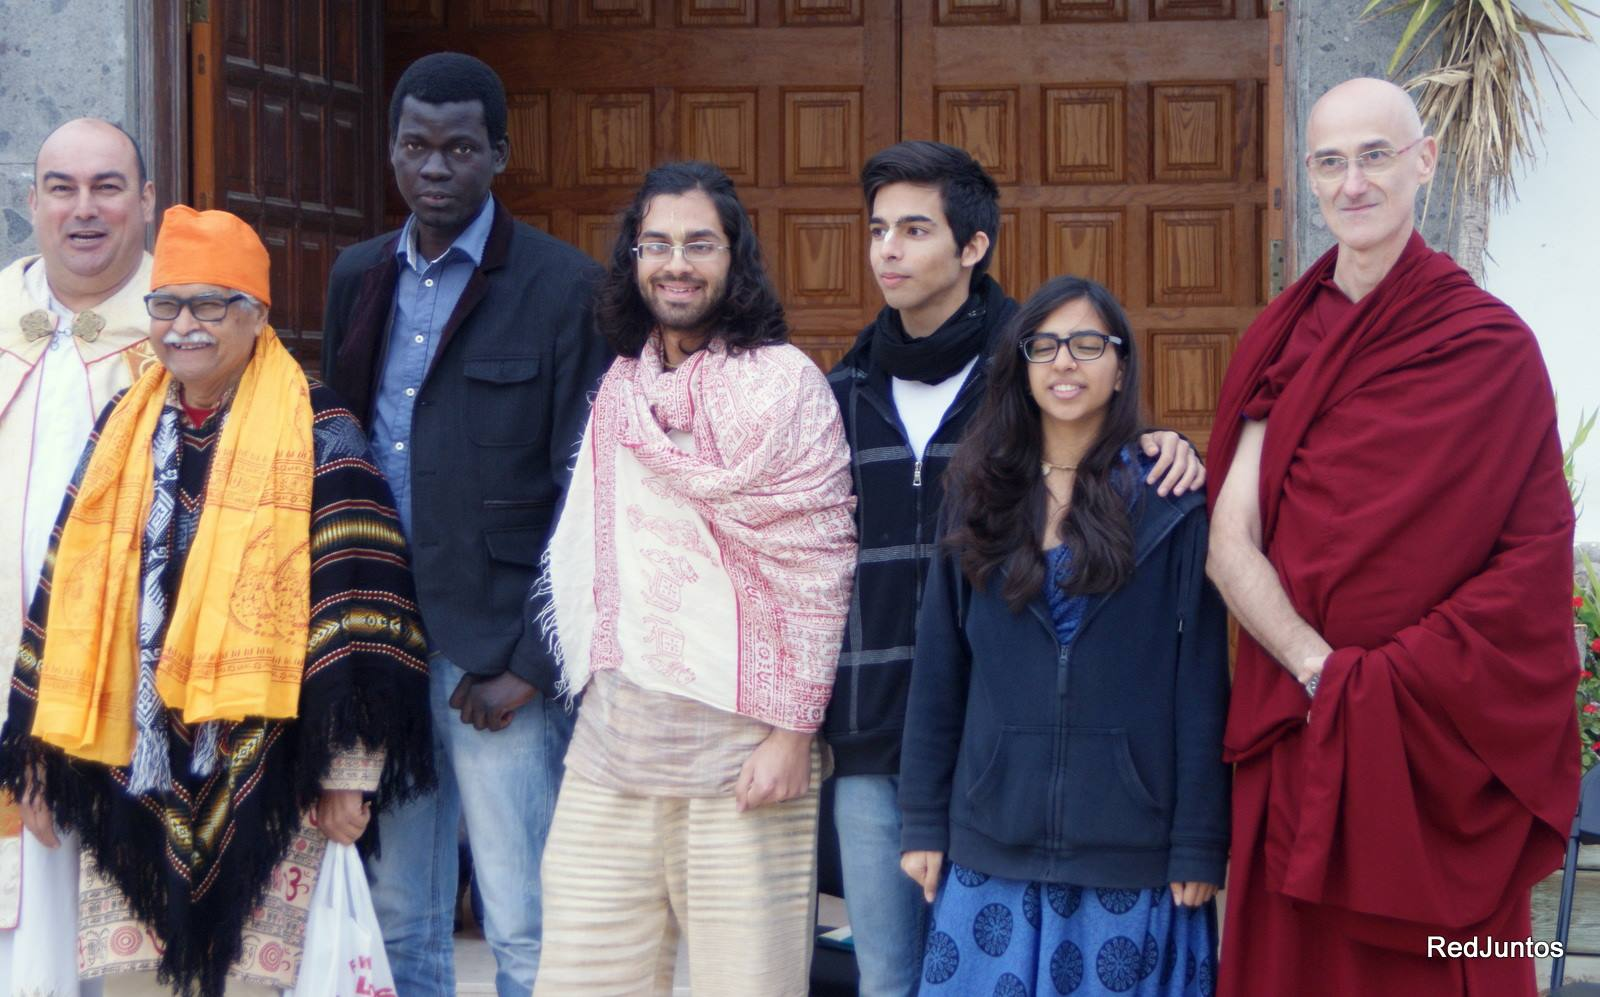 More participants in the Inter Faith Meeting